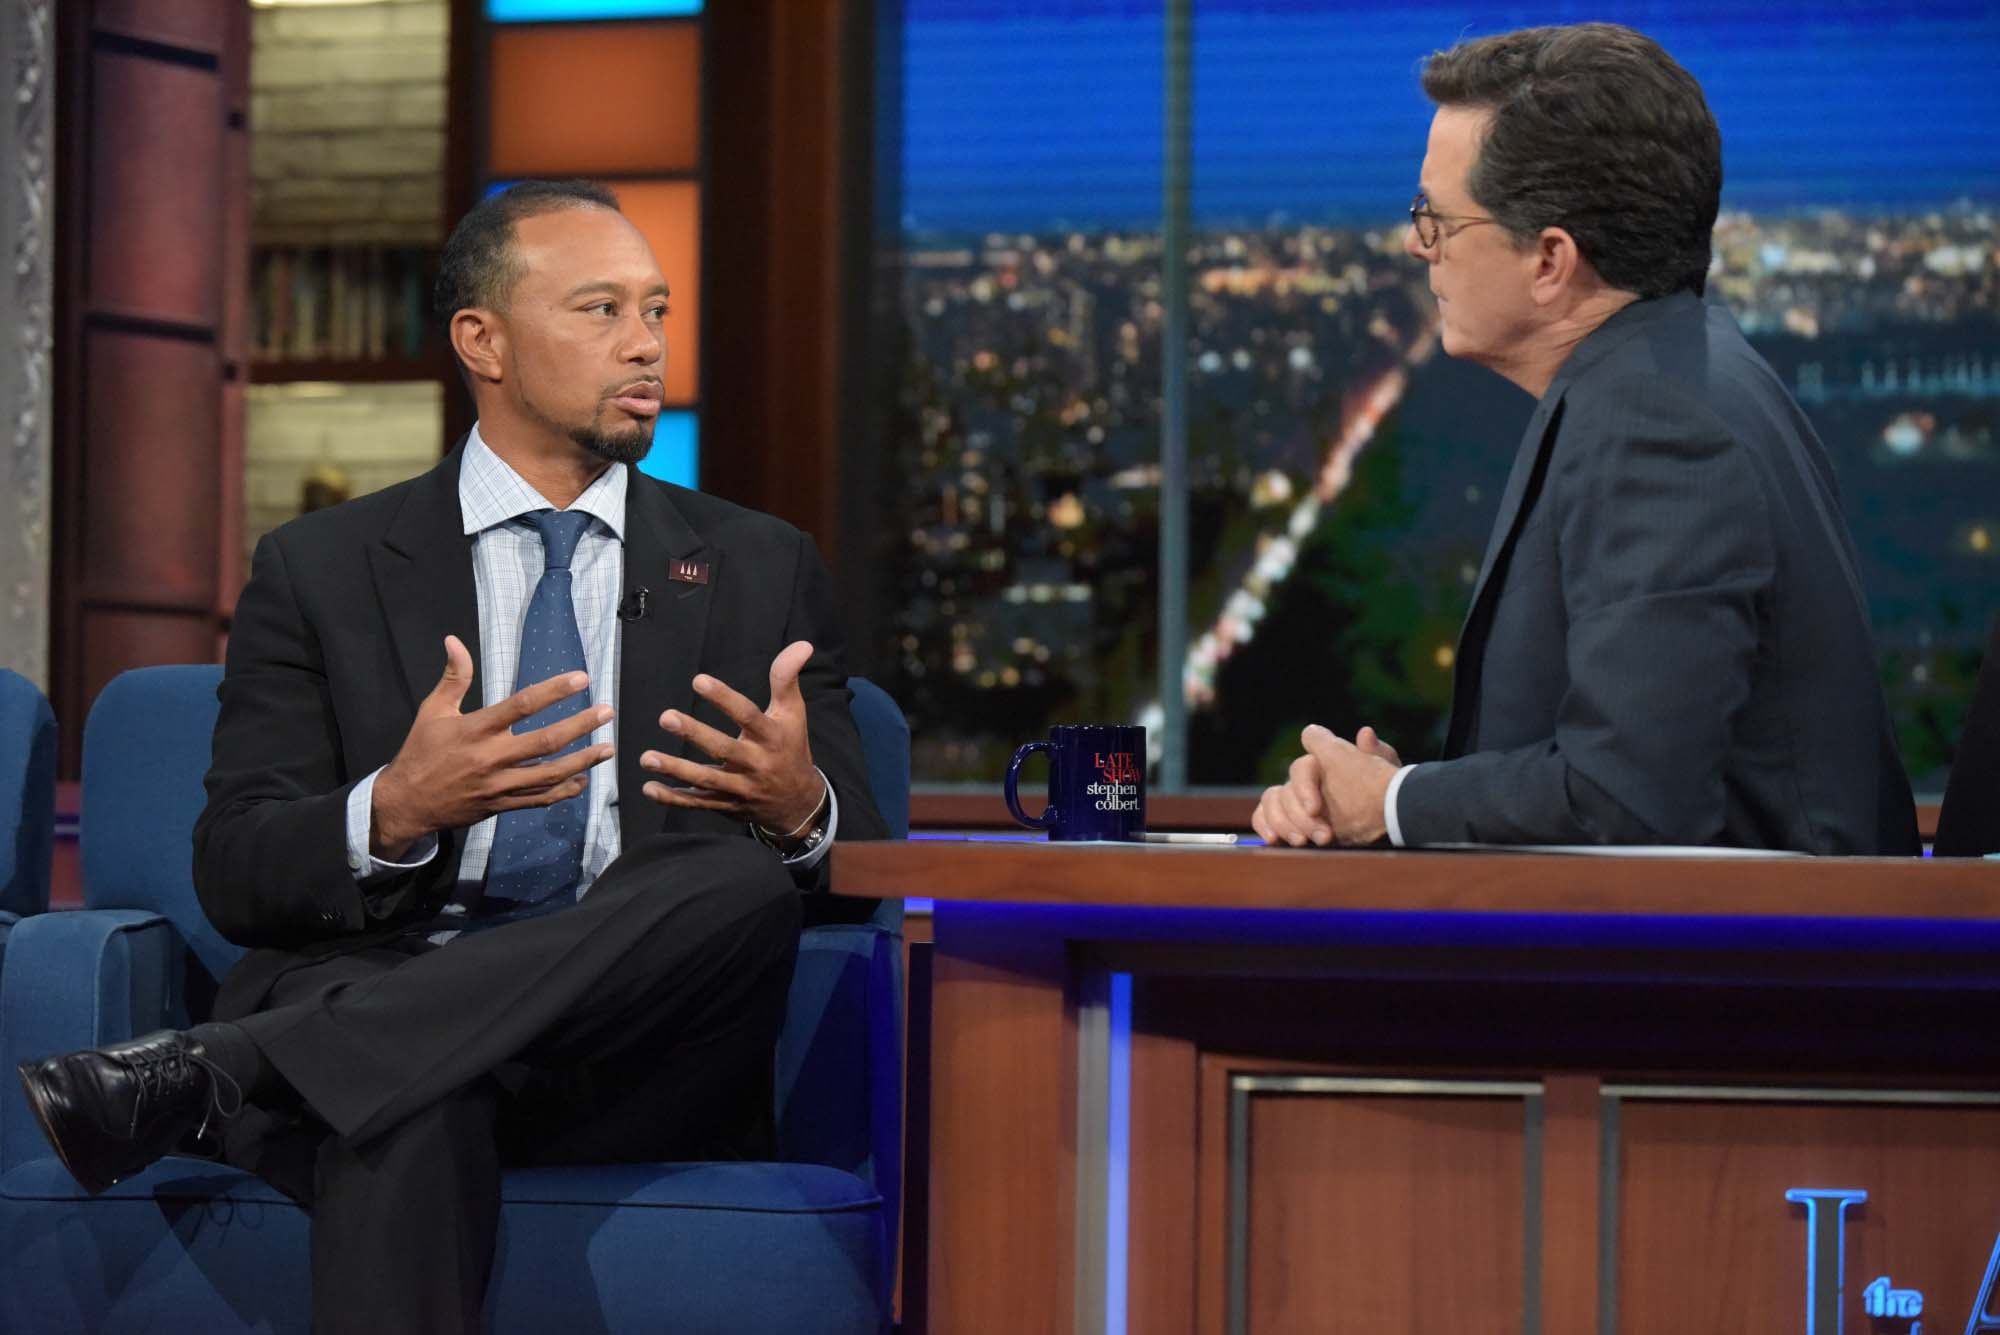 So is late-night TV